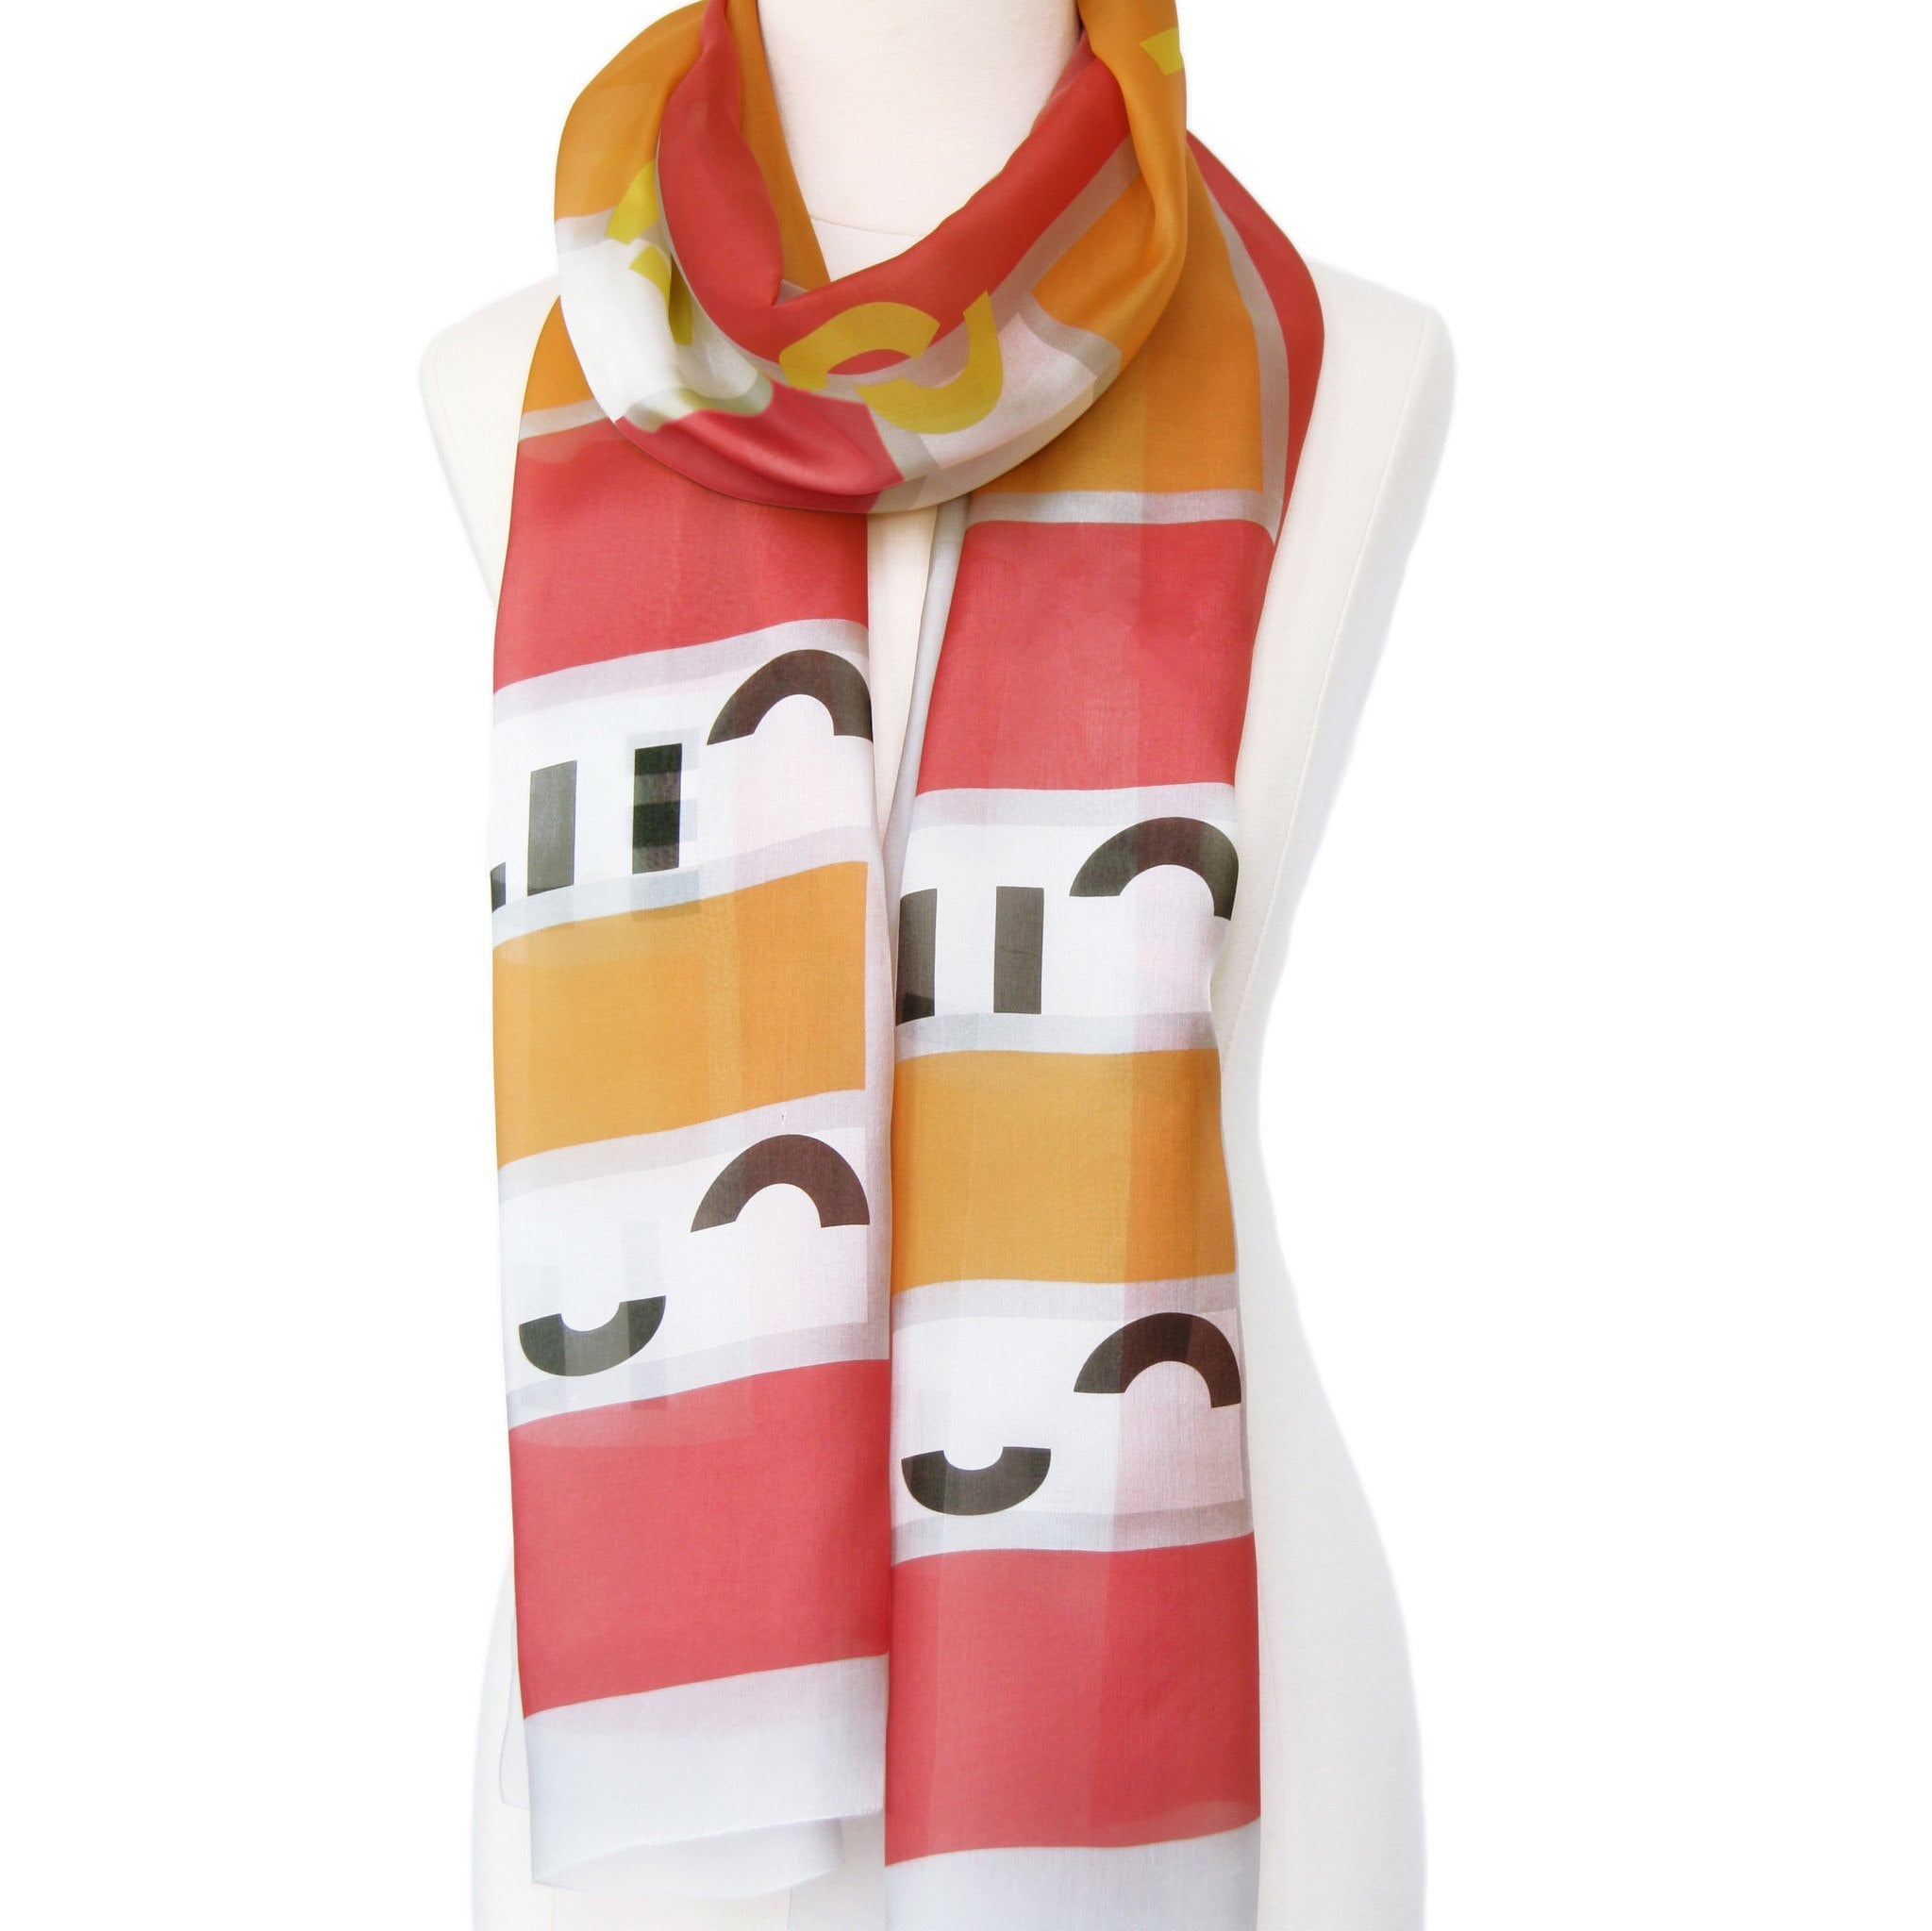 In-a-word Scarf: CUTE